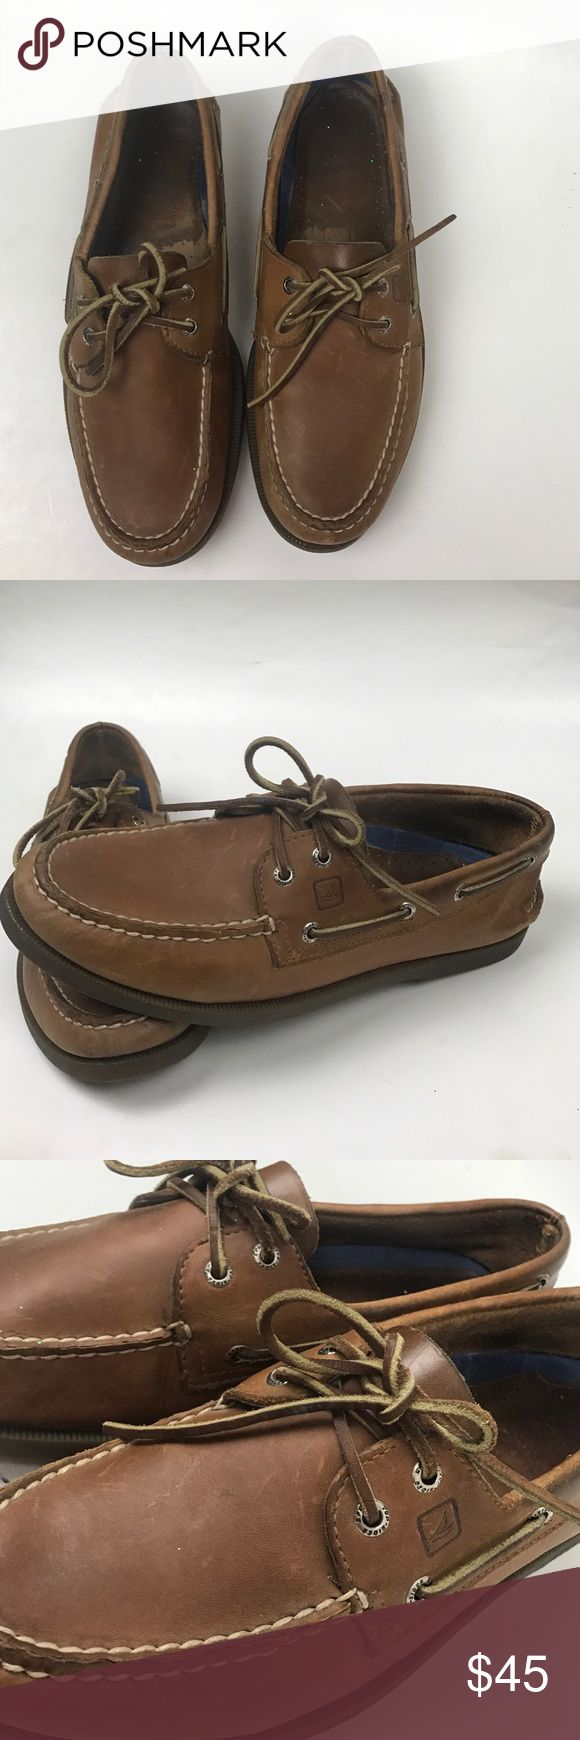 Sperry Top-sider Men's Men's shoes some 9M Sperry Top-Sider Shoes Boat Shoes